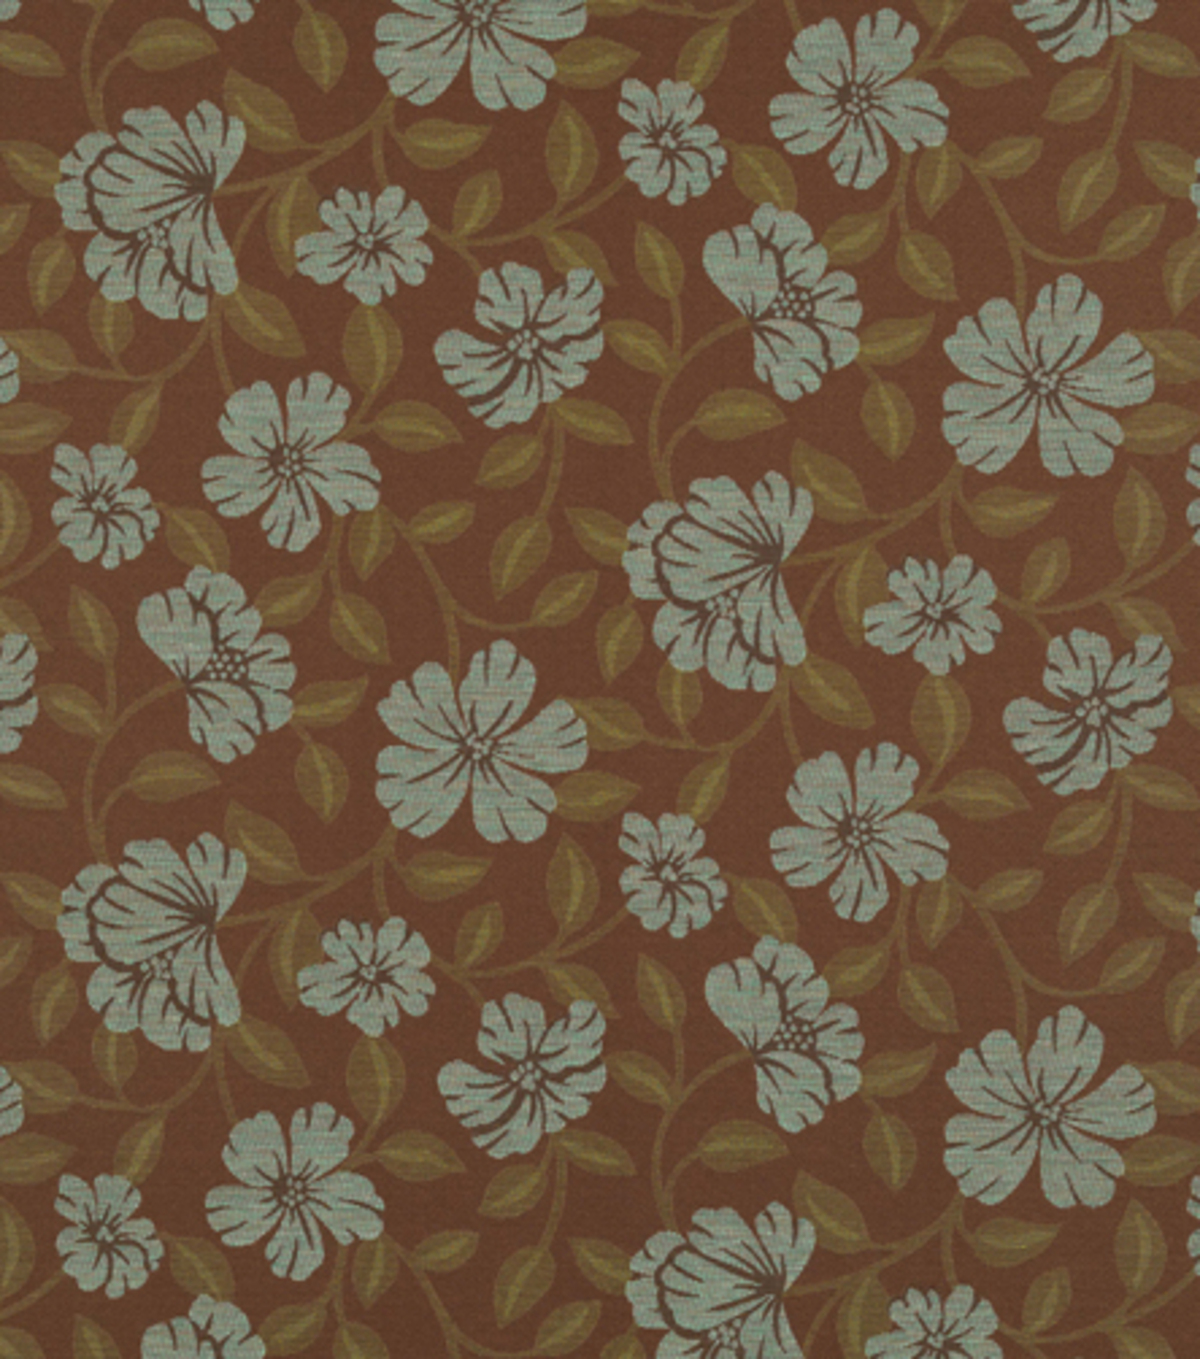 Home Decor Upholstery Fabric-Crypton Hibiscus Bloom-Teal Blue